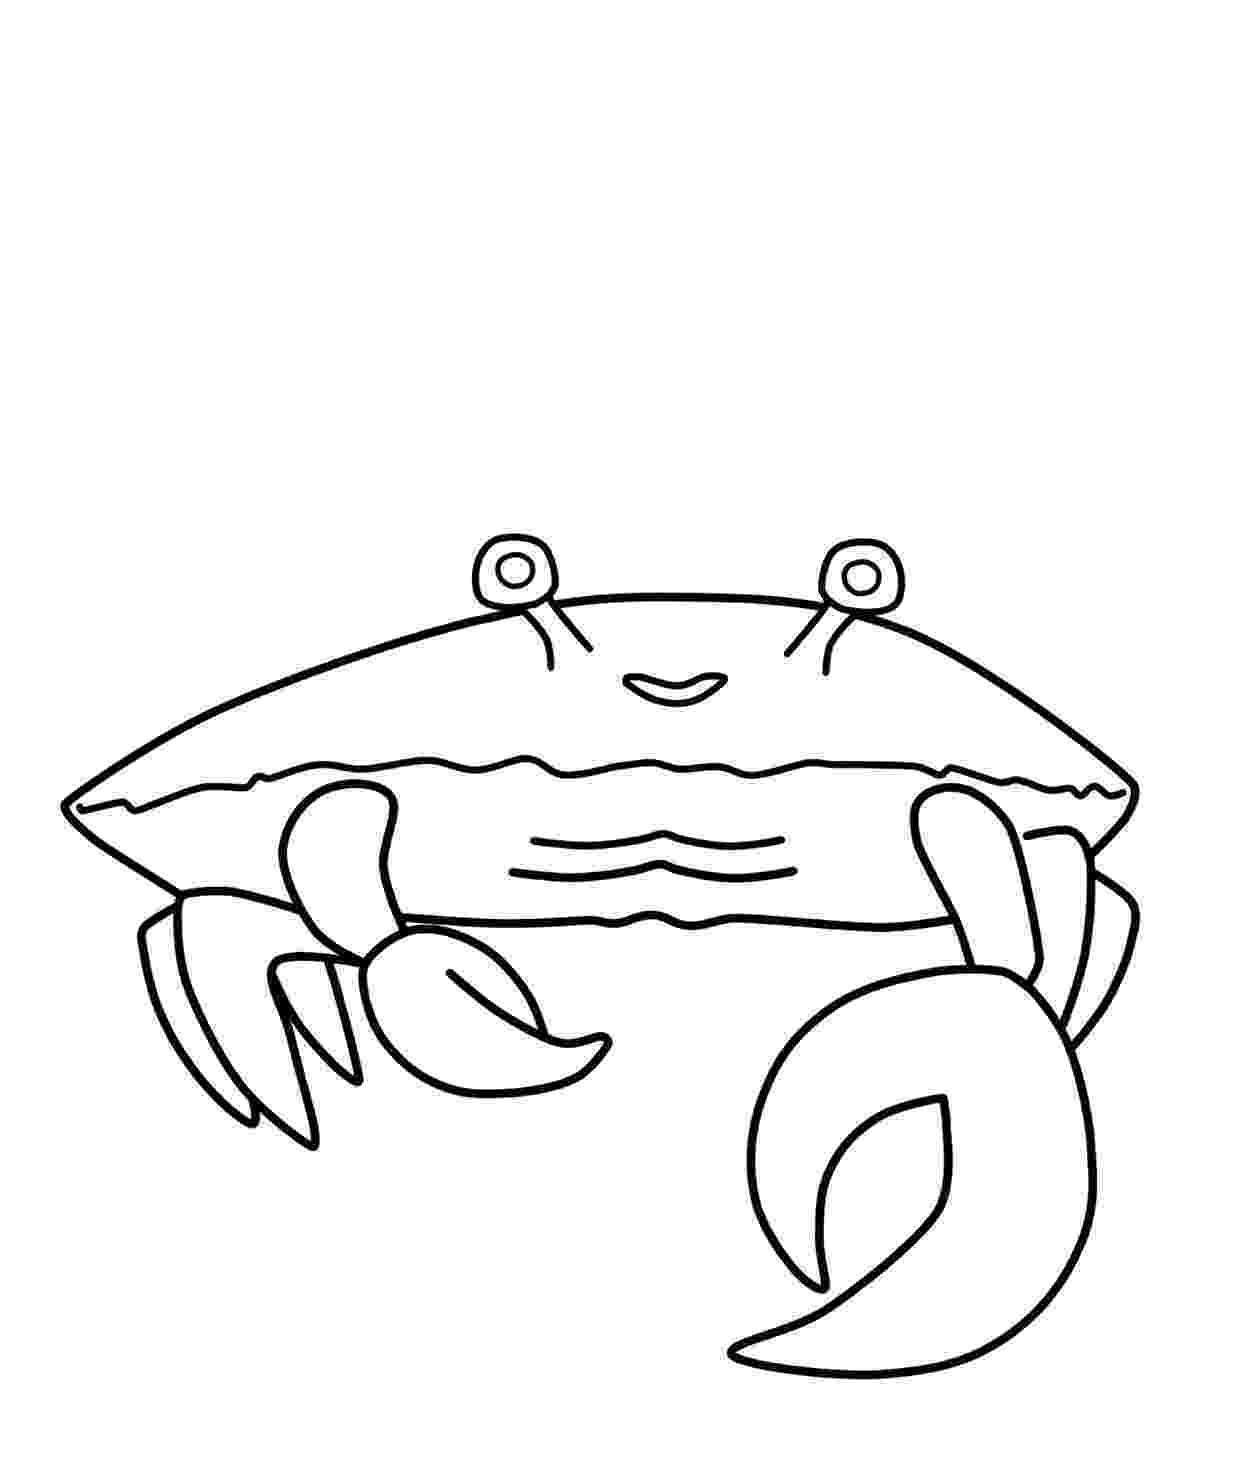 crab pictures to colour free printable crab coloring pages for kids animal place to crab pictures colour